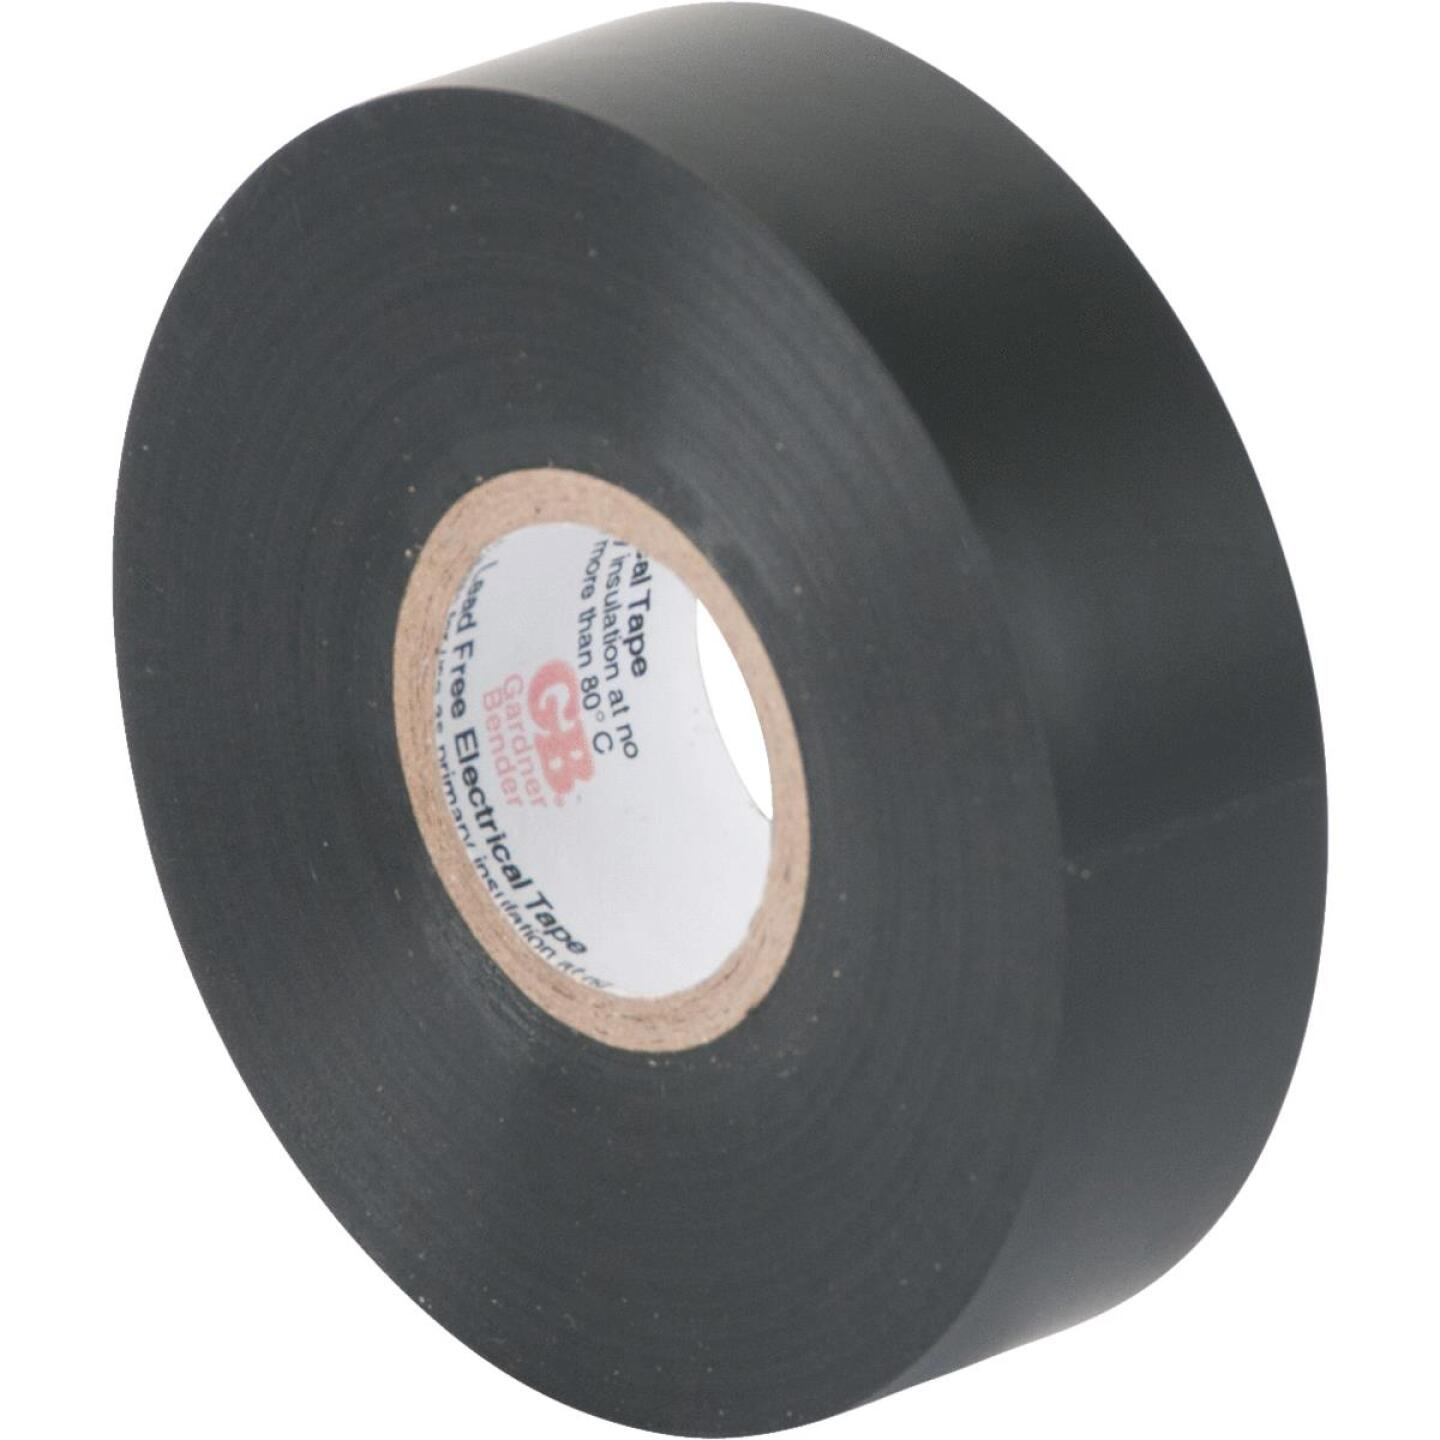 Gardner Bender General Purpose 3/4 In. x 60 Ft. Electrical Tape Image 1